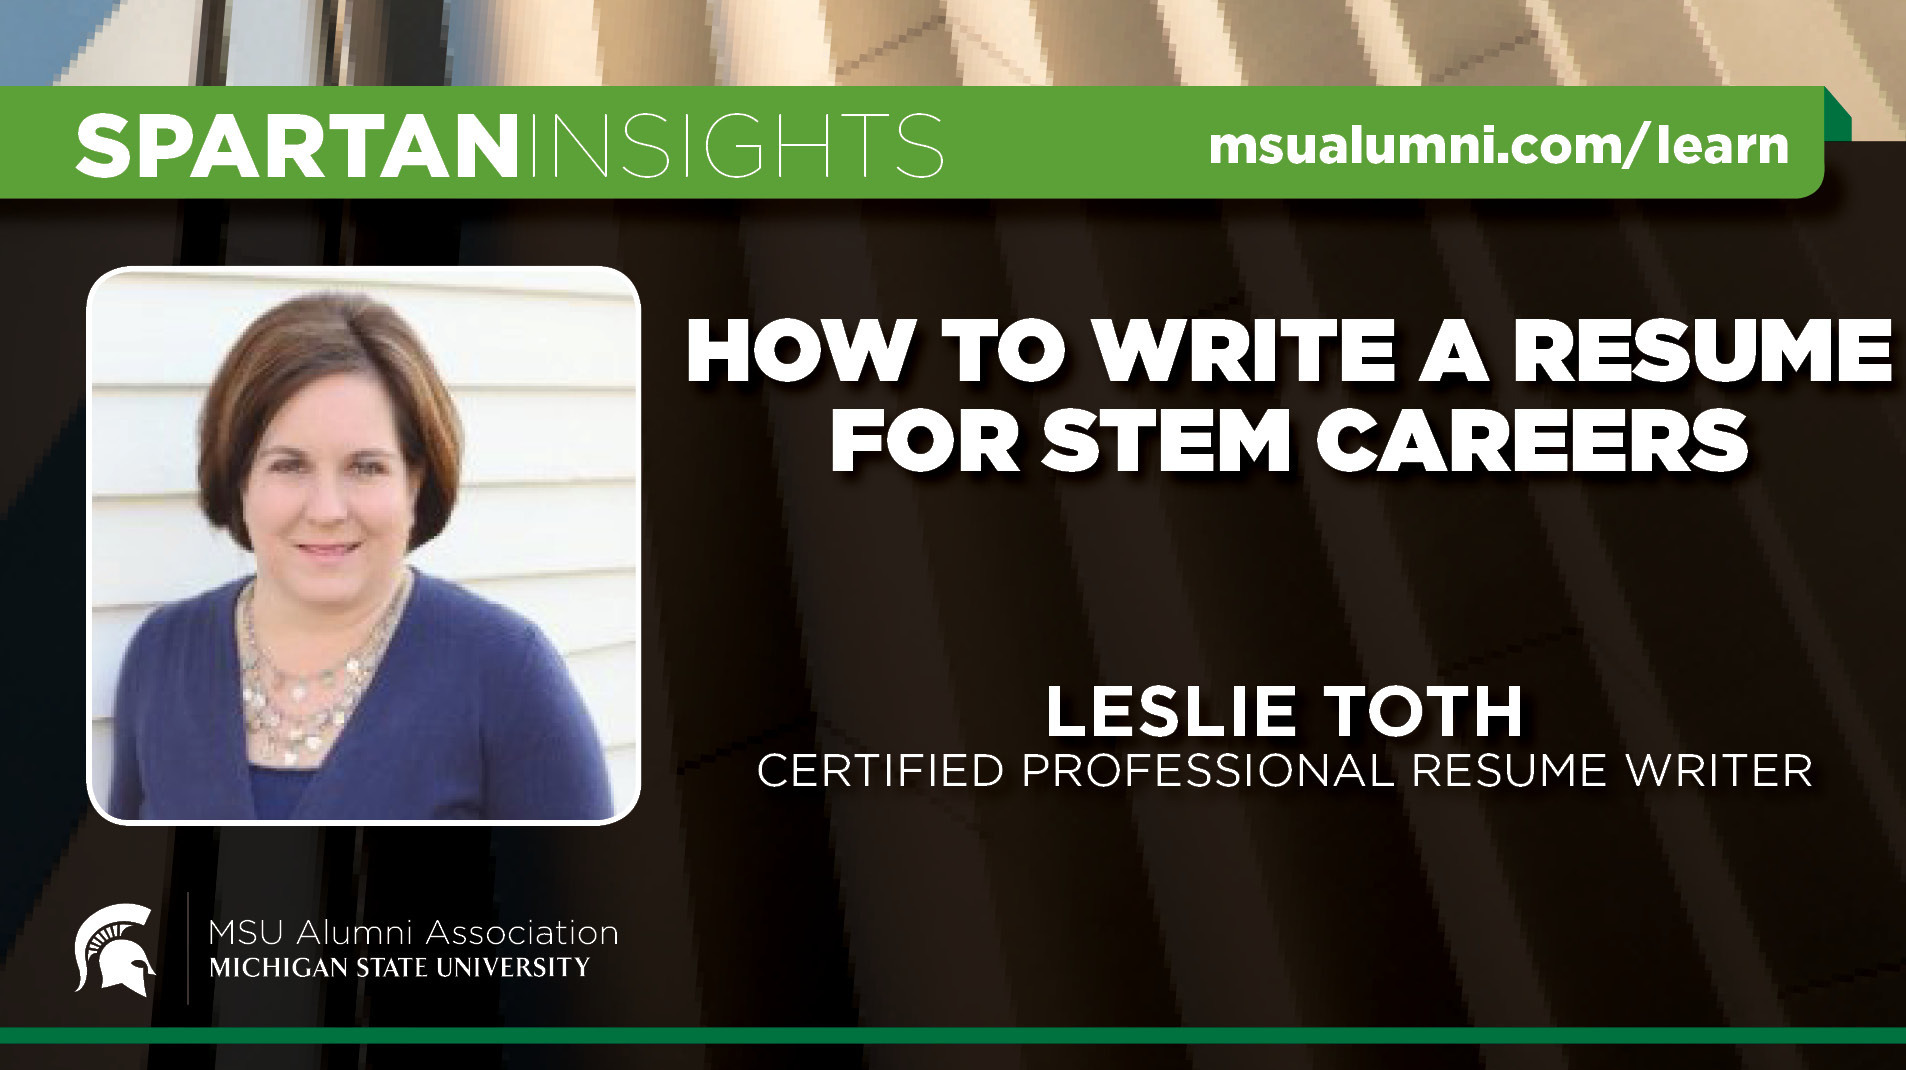 webinar cover image for Leslie Toth | How To Write A Resume For Stem Careers